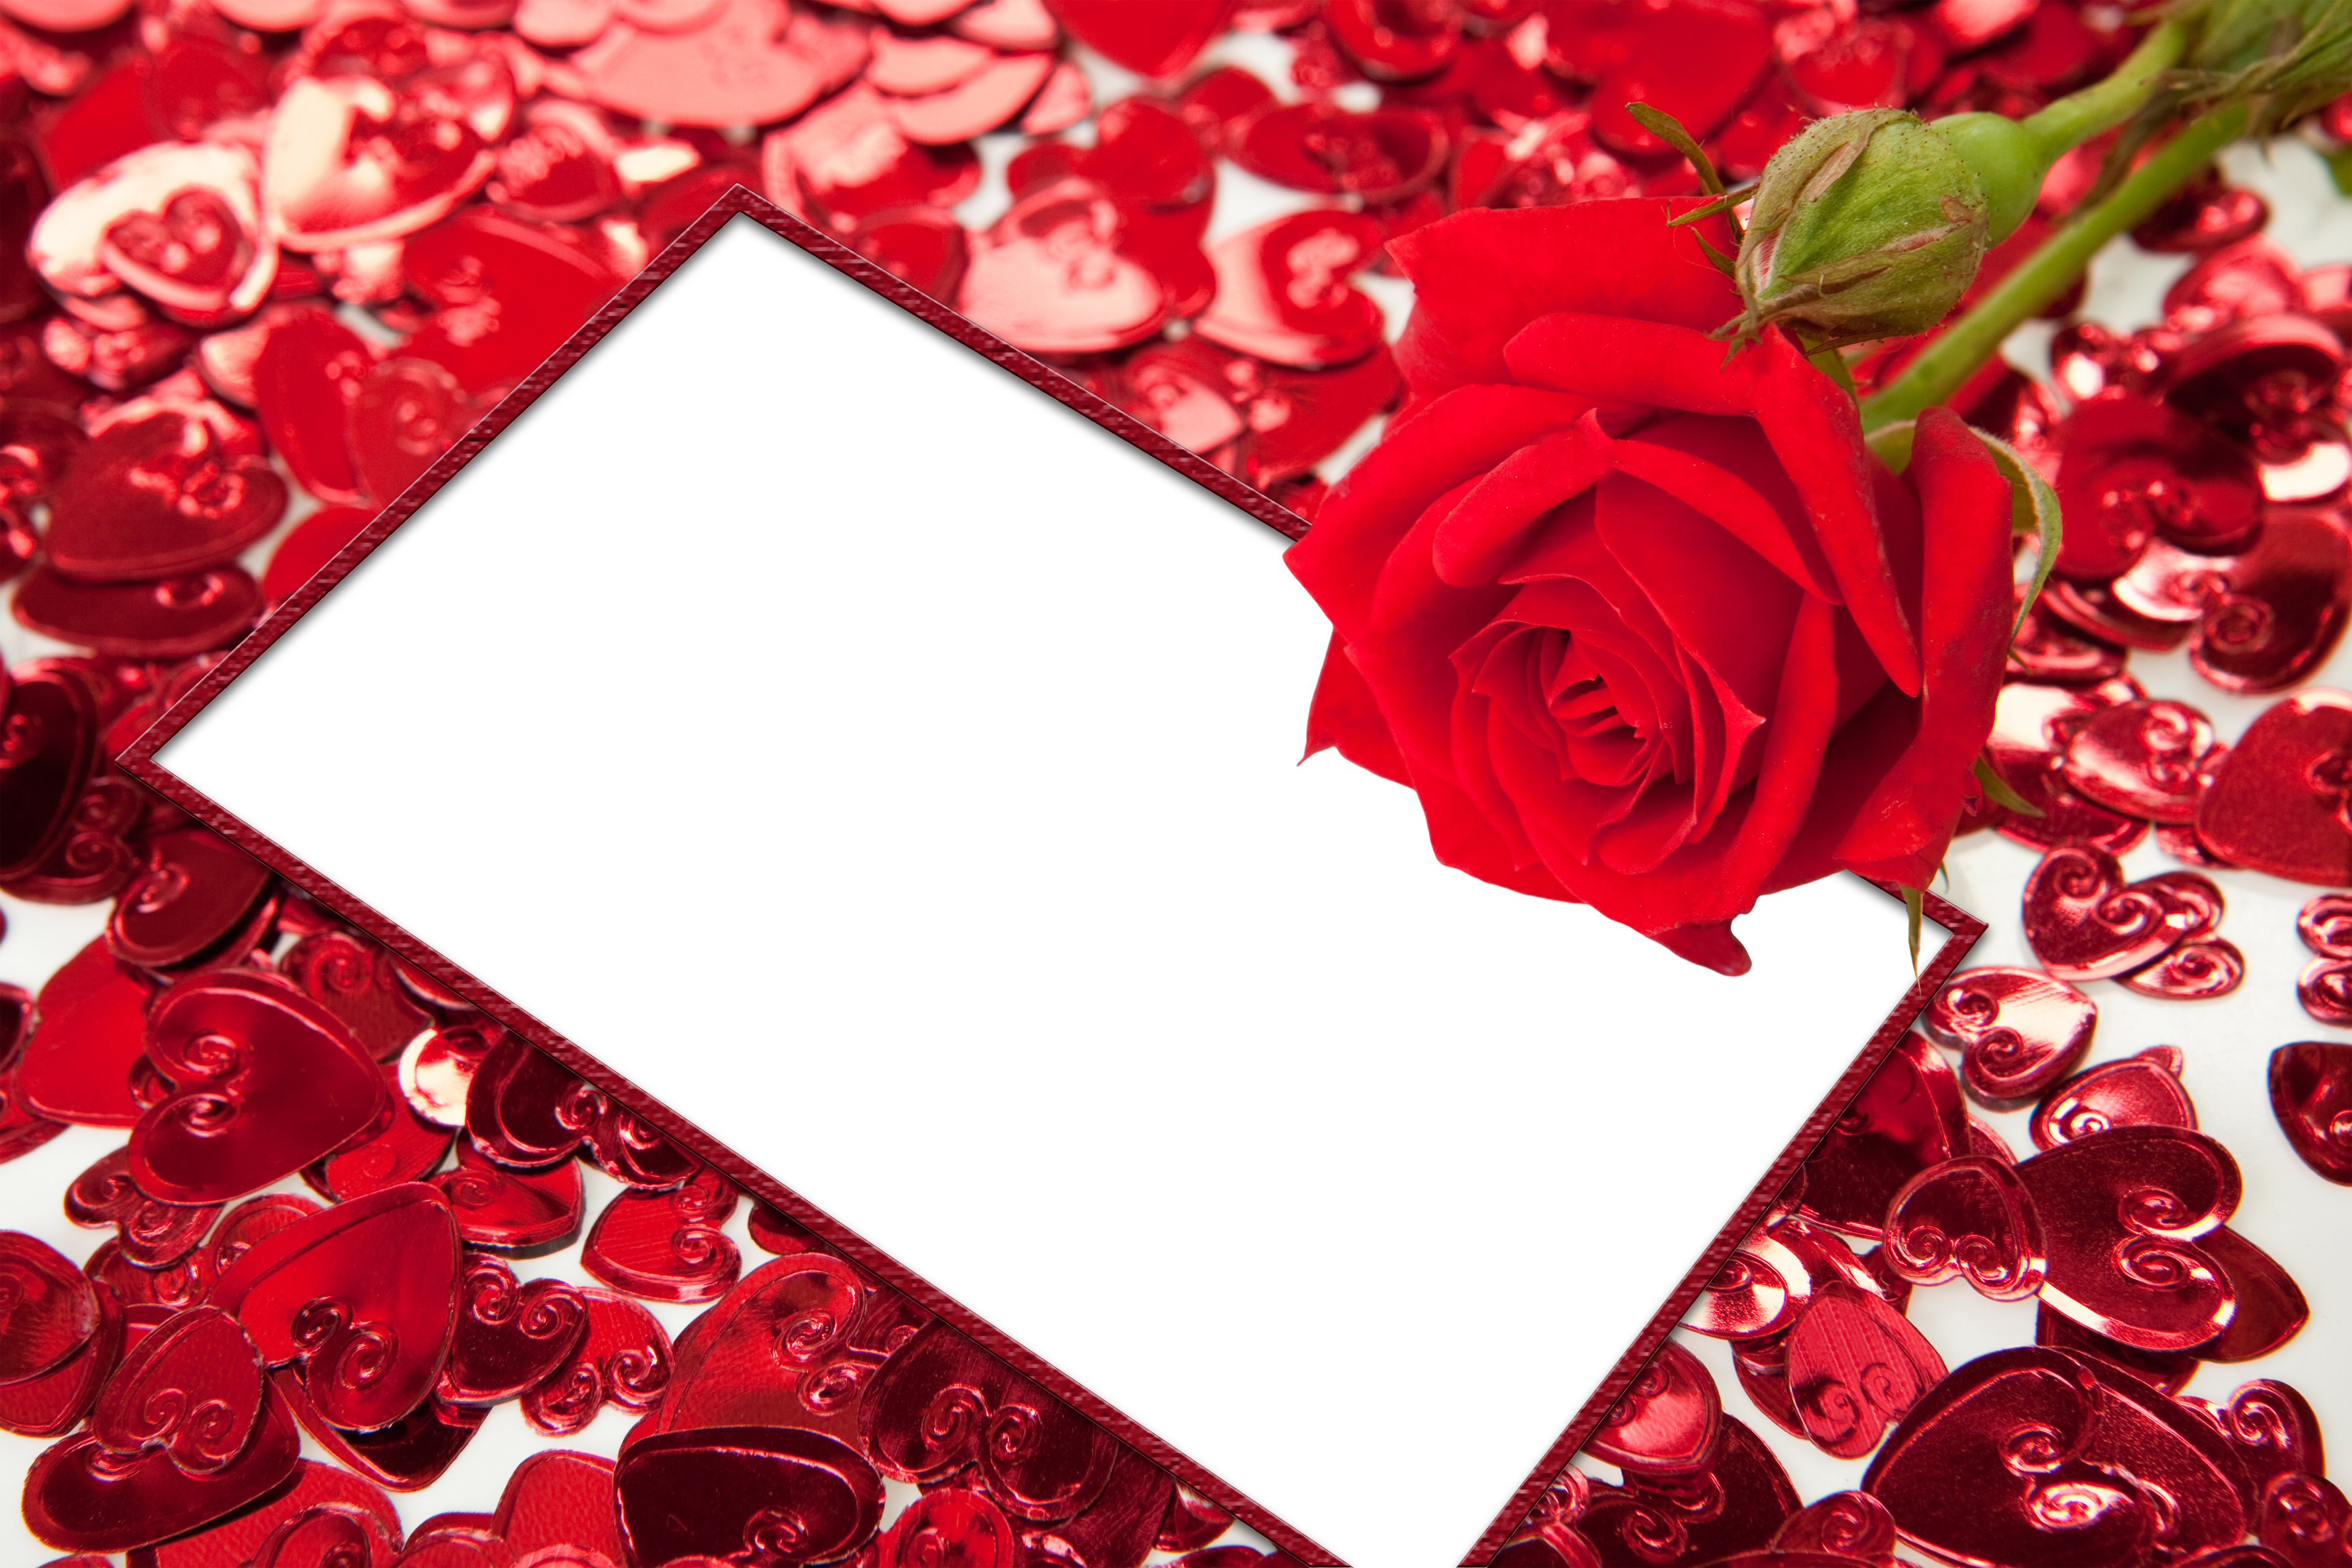 Red Roses And Hearts Transparent Png Photo Frame Flower Wallpaper Red Roses Cards